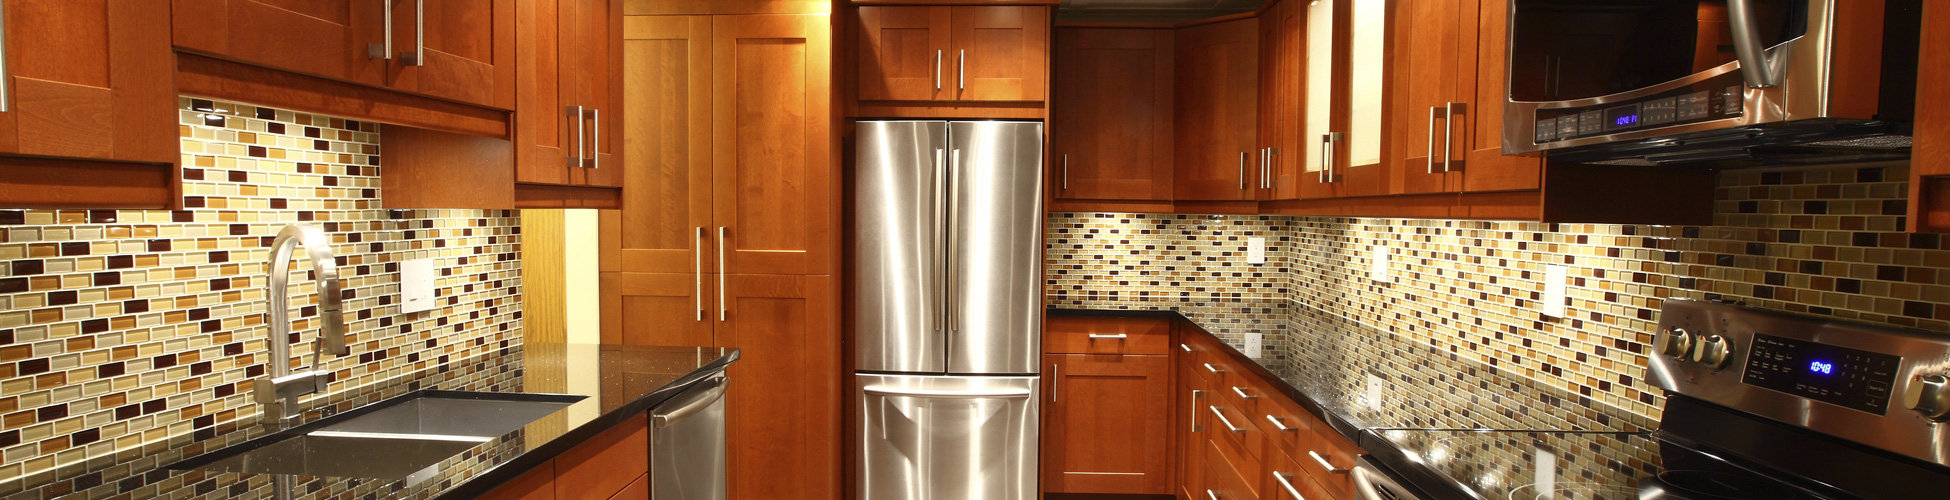 Kitchen remodeling loan kitchen remodel financing hfs for Kitchen remodel financing